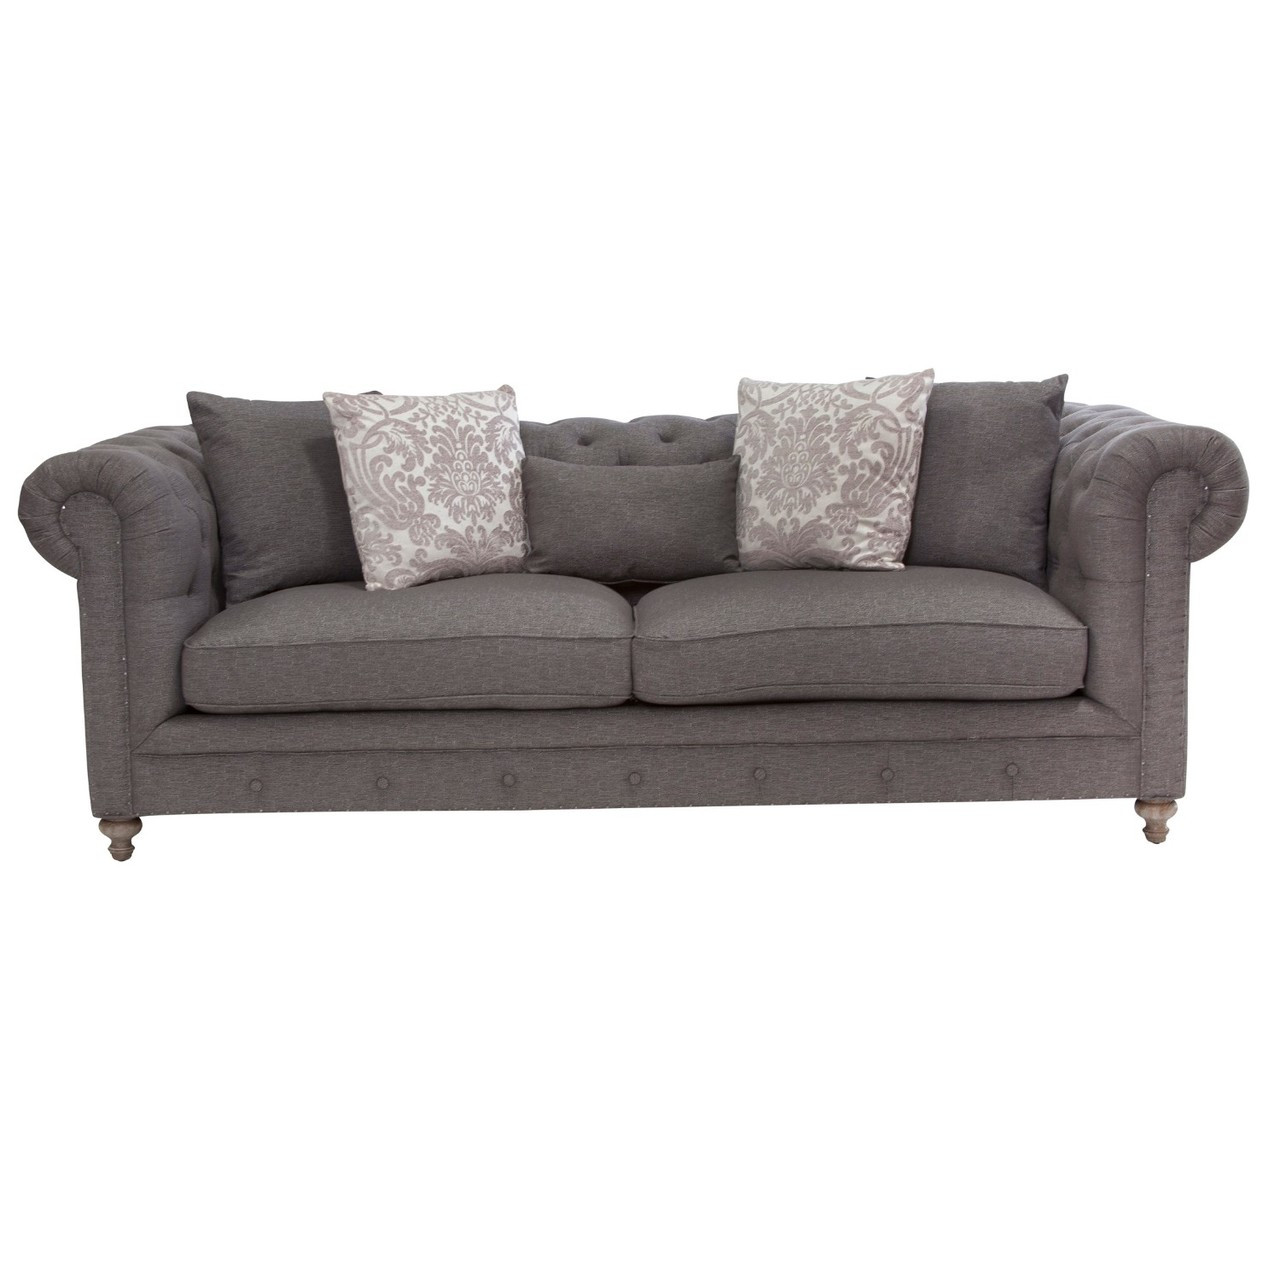 alice charcoal tufted sofa 104 zin home rh zinhome com  charcoal gray tufted sofa